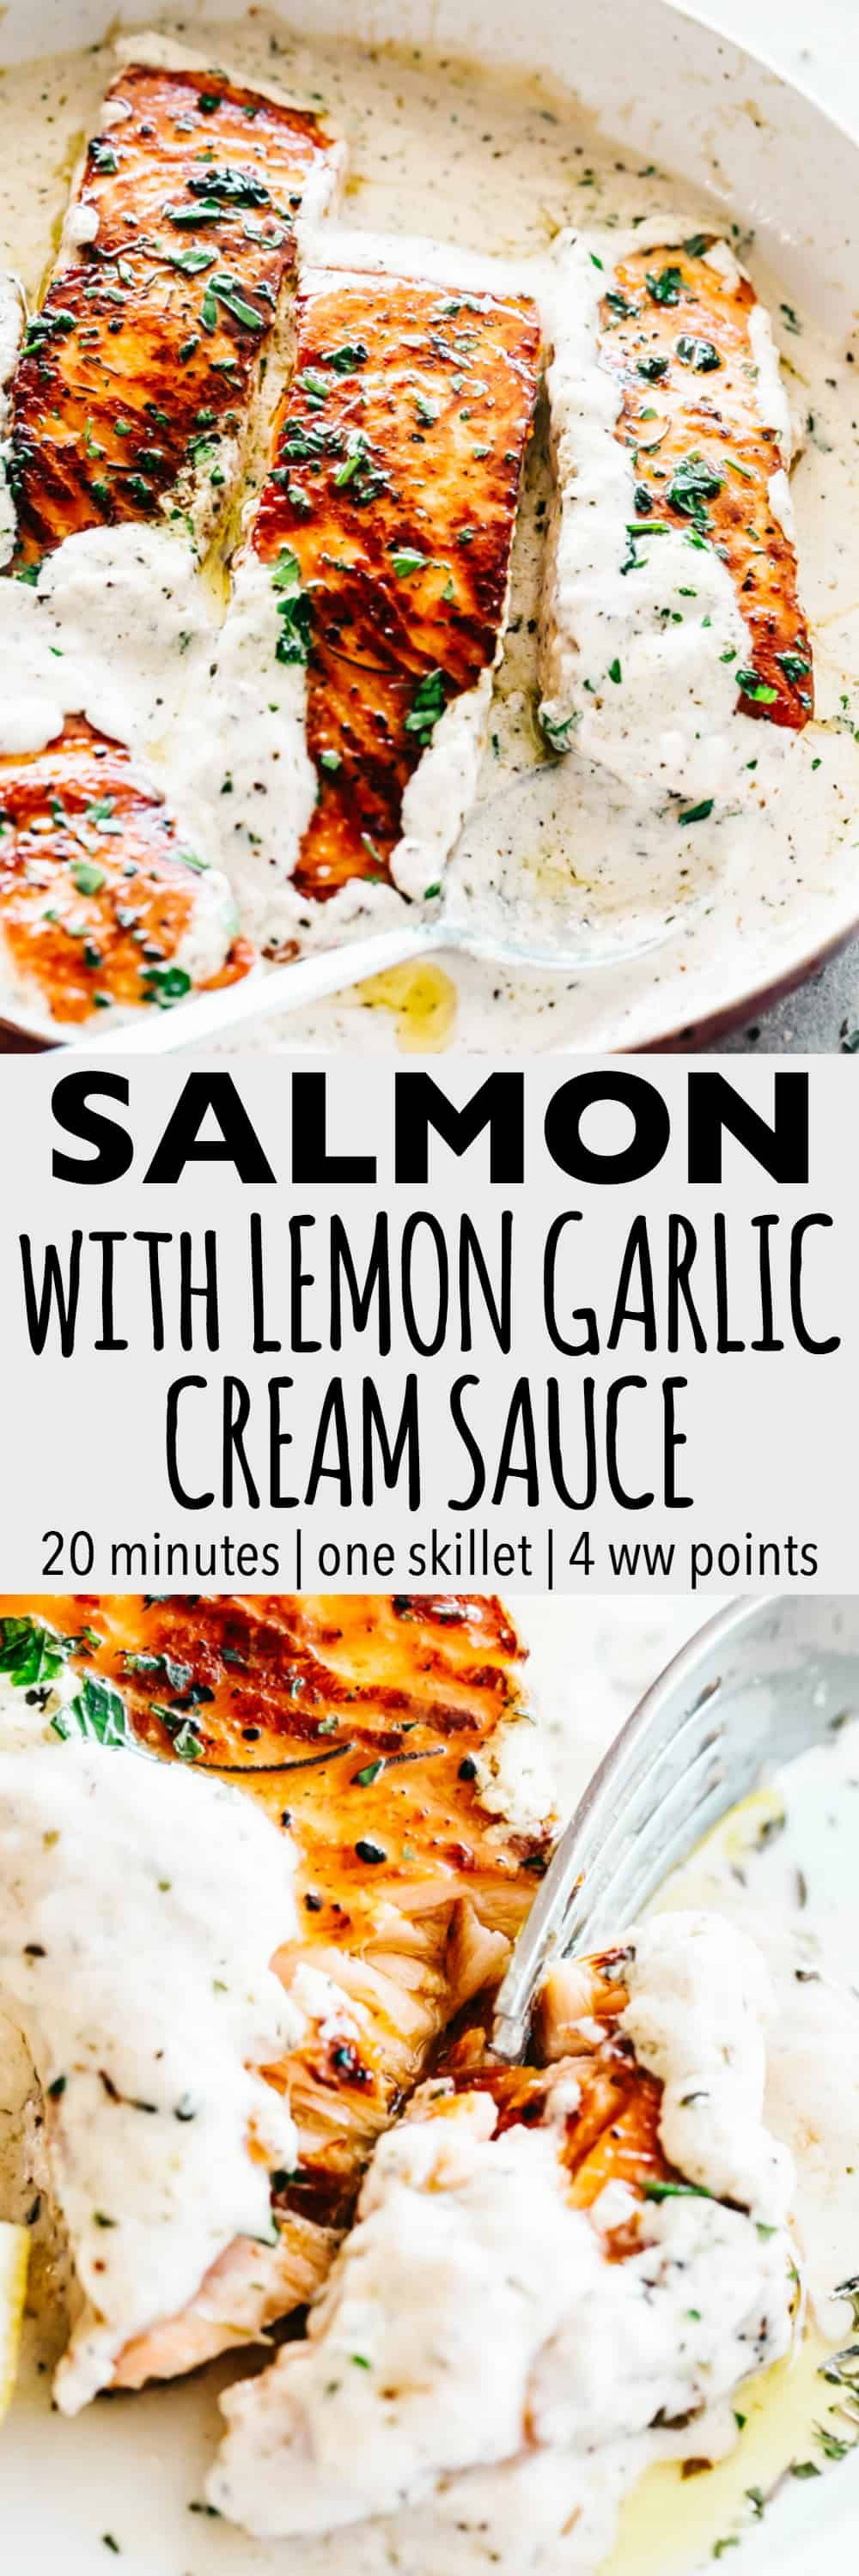 The 7 Best Keto Salmon Recipes EVER #seafooddishes